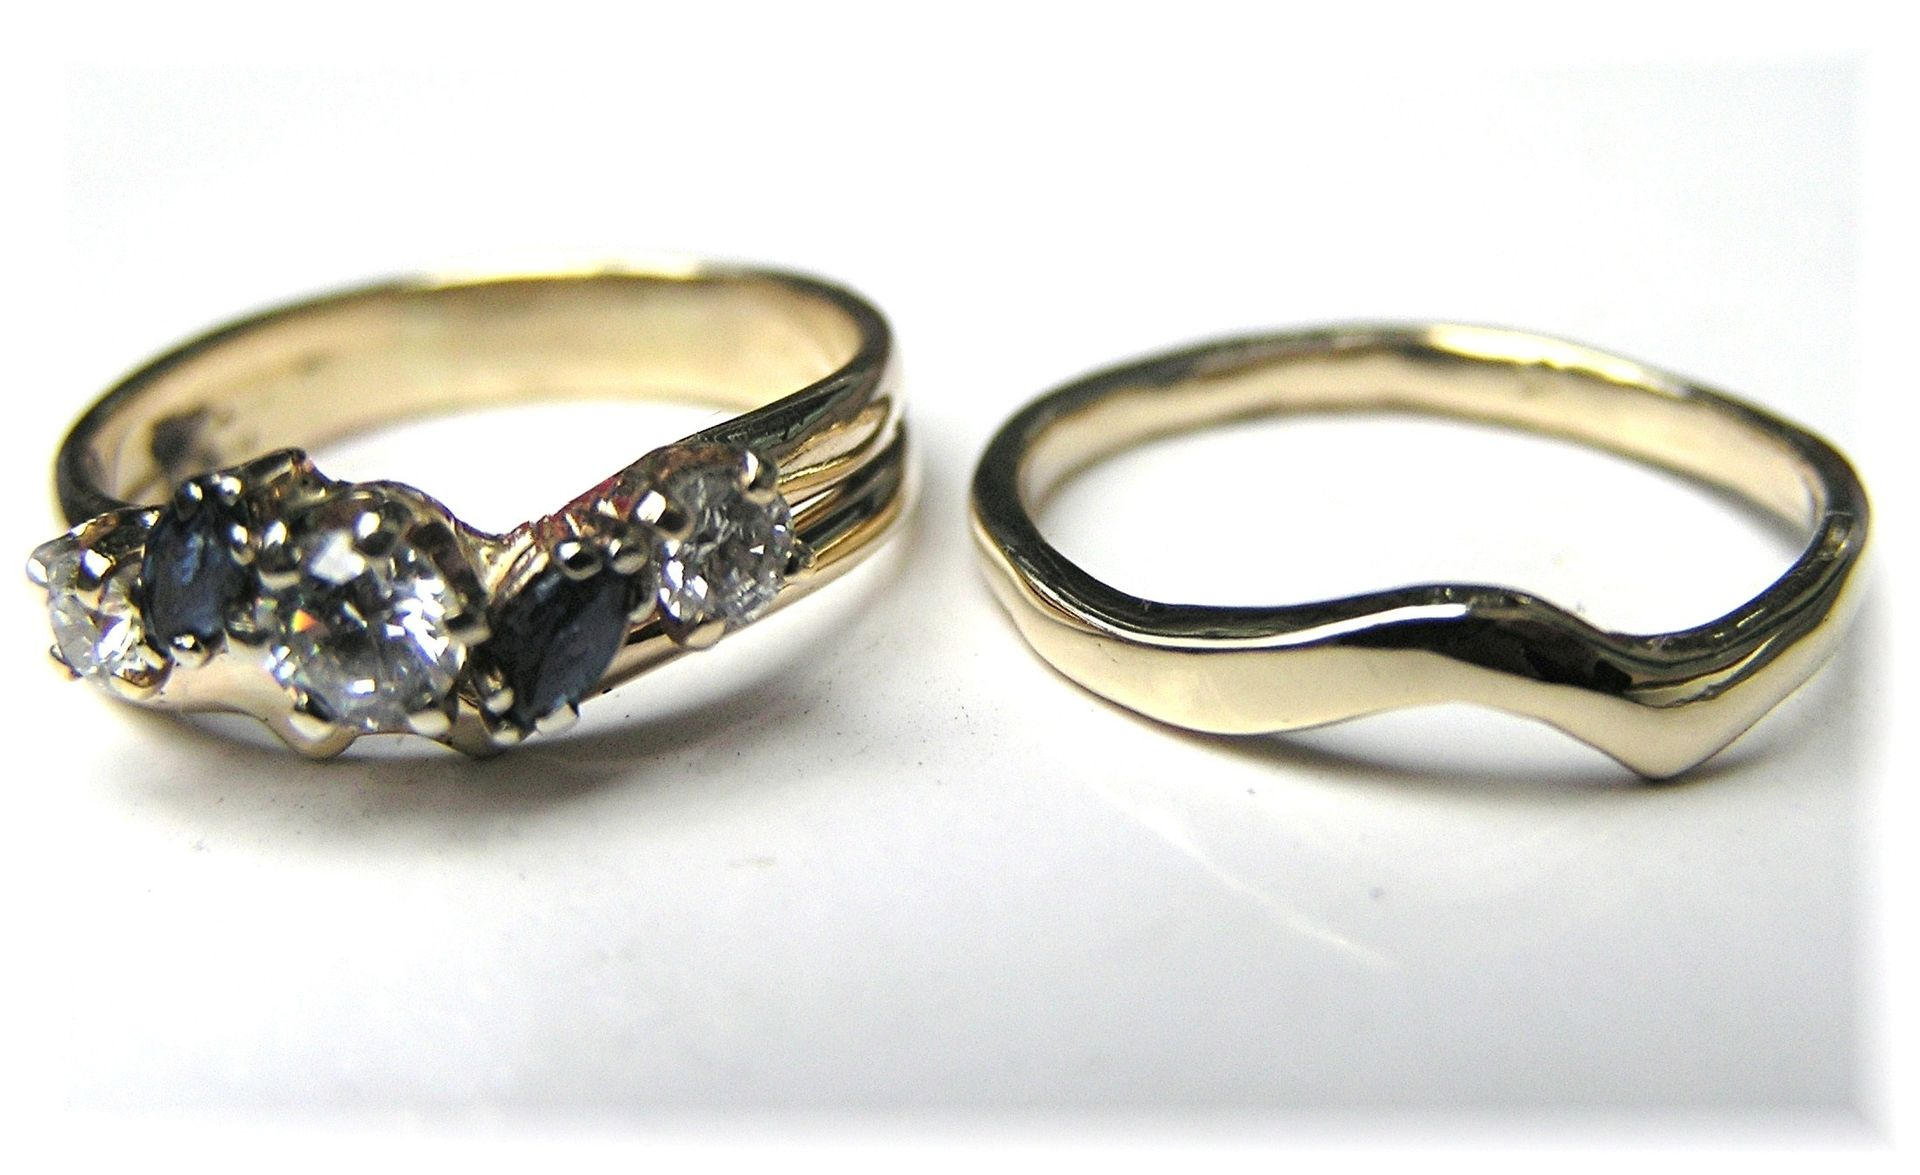 miadonna rings oval archives sets wedding within diamond blog ideas man best of engagement made